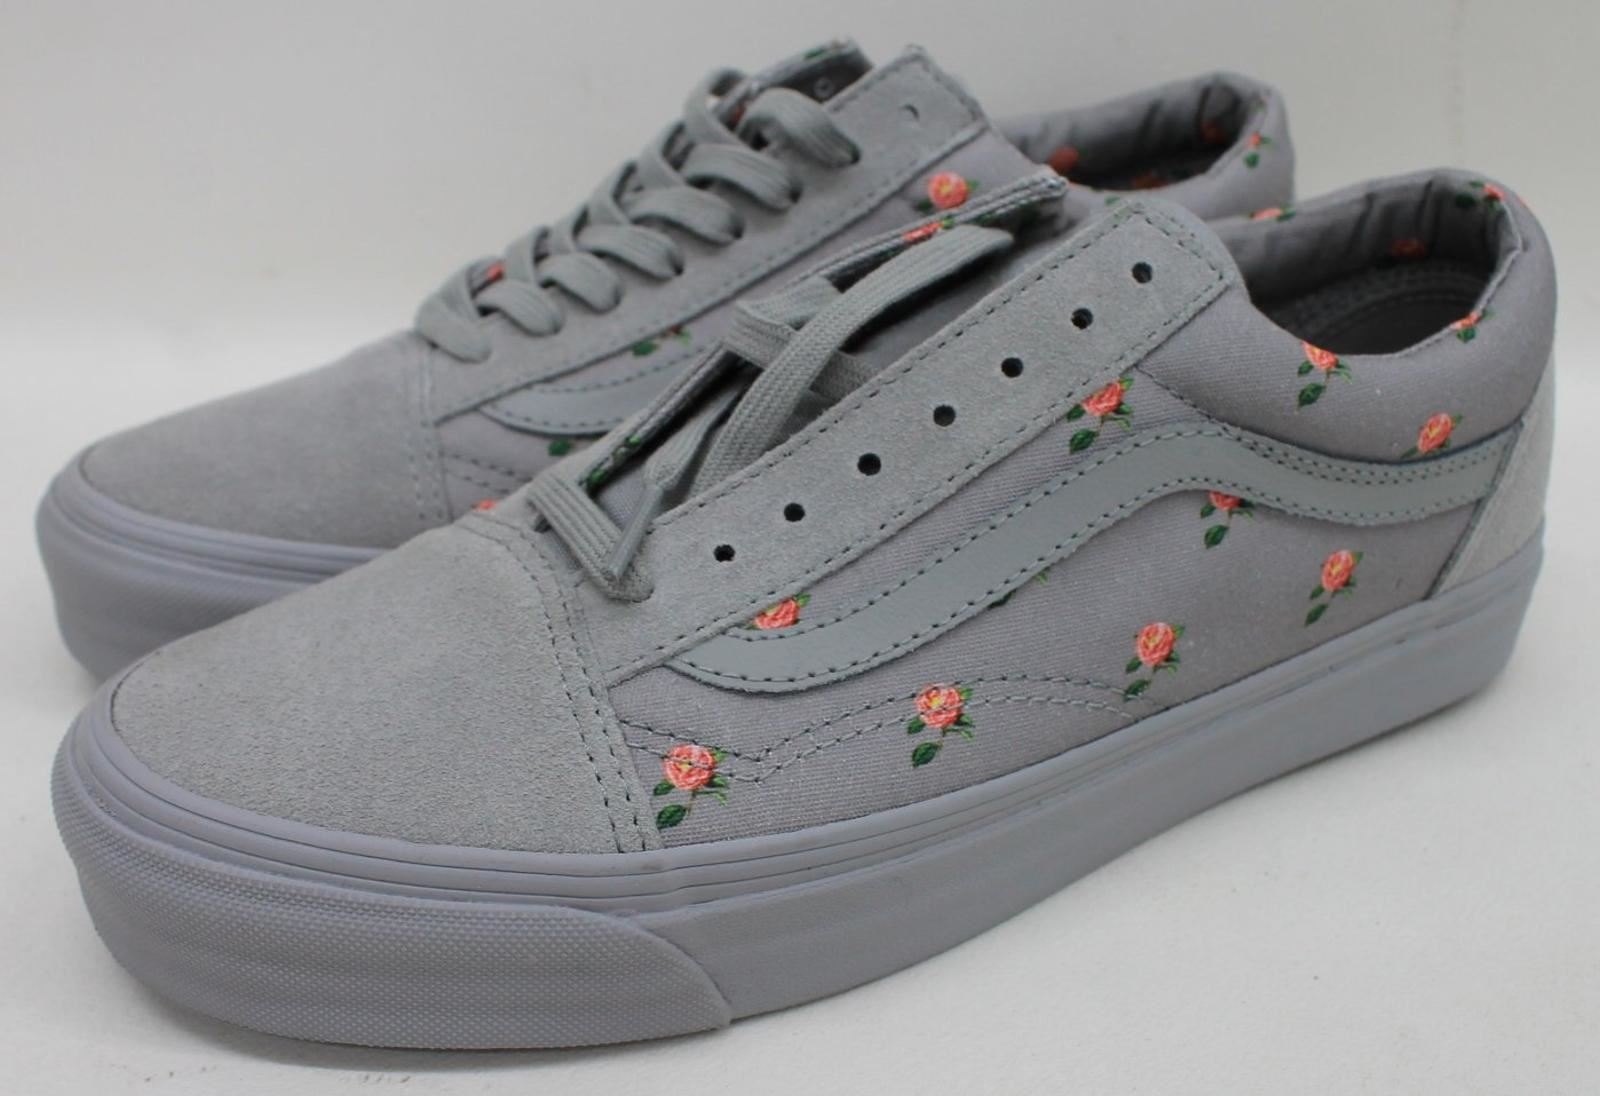 269887cf4 VANS x Undercover OG Old Skool MX Flowers Grey Skate Mens Shoes ...